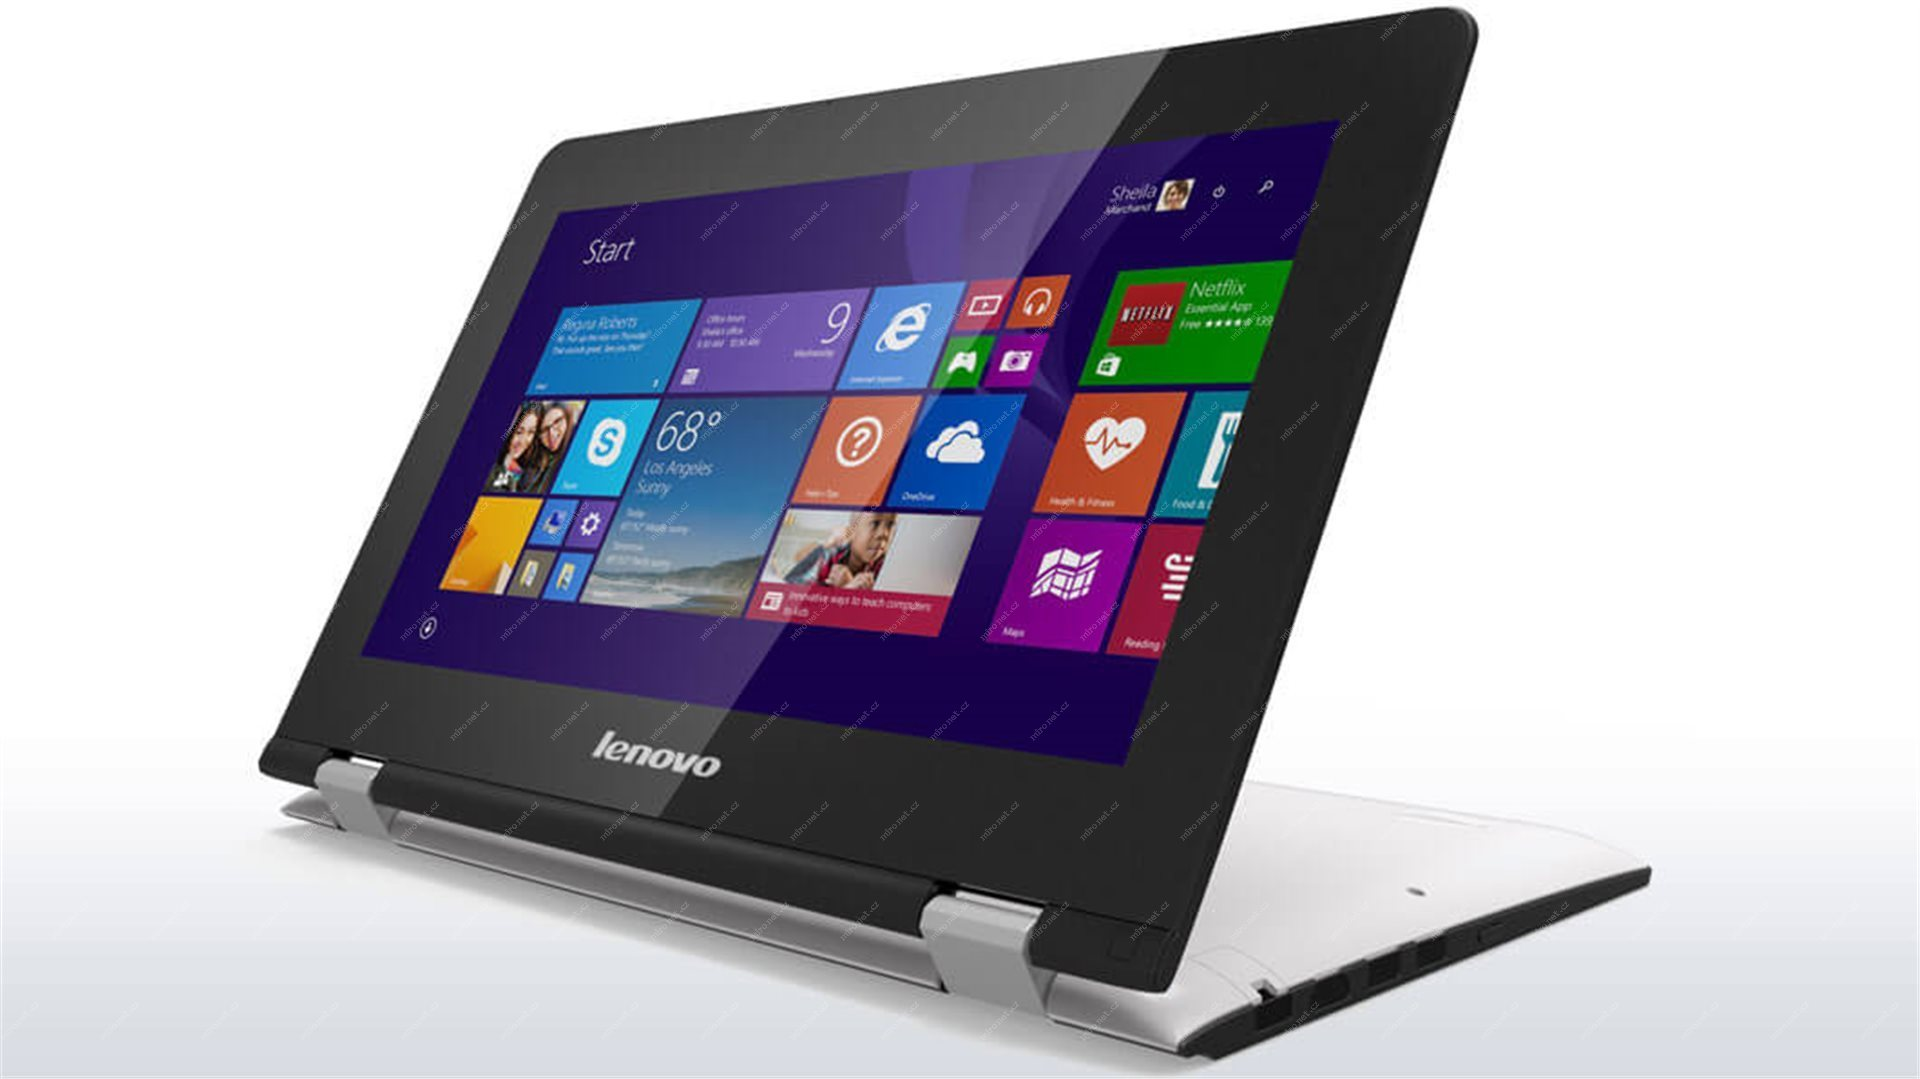 Notebook Lenovo IdeaPad Yoga 500